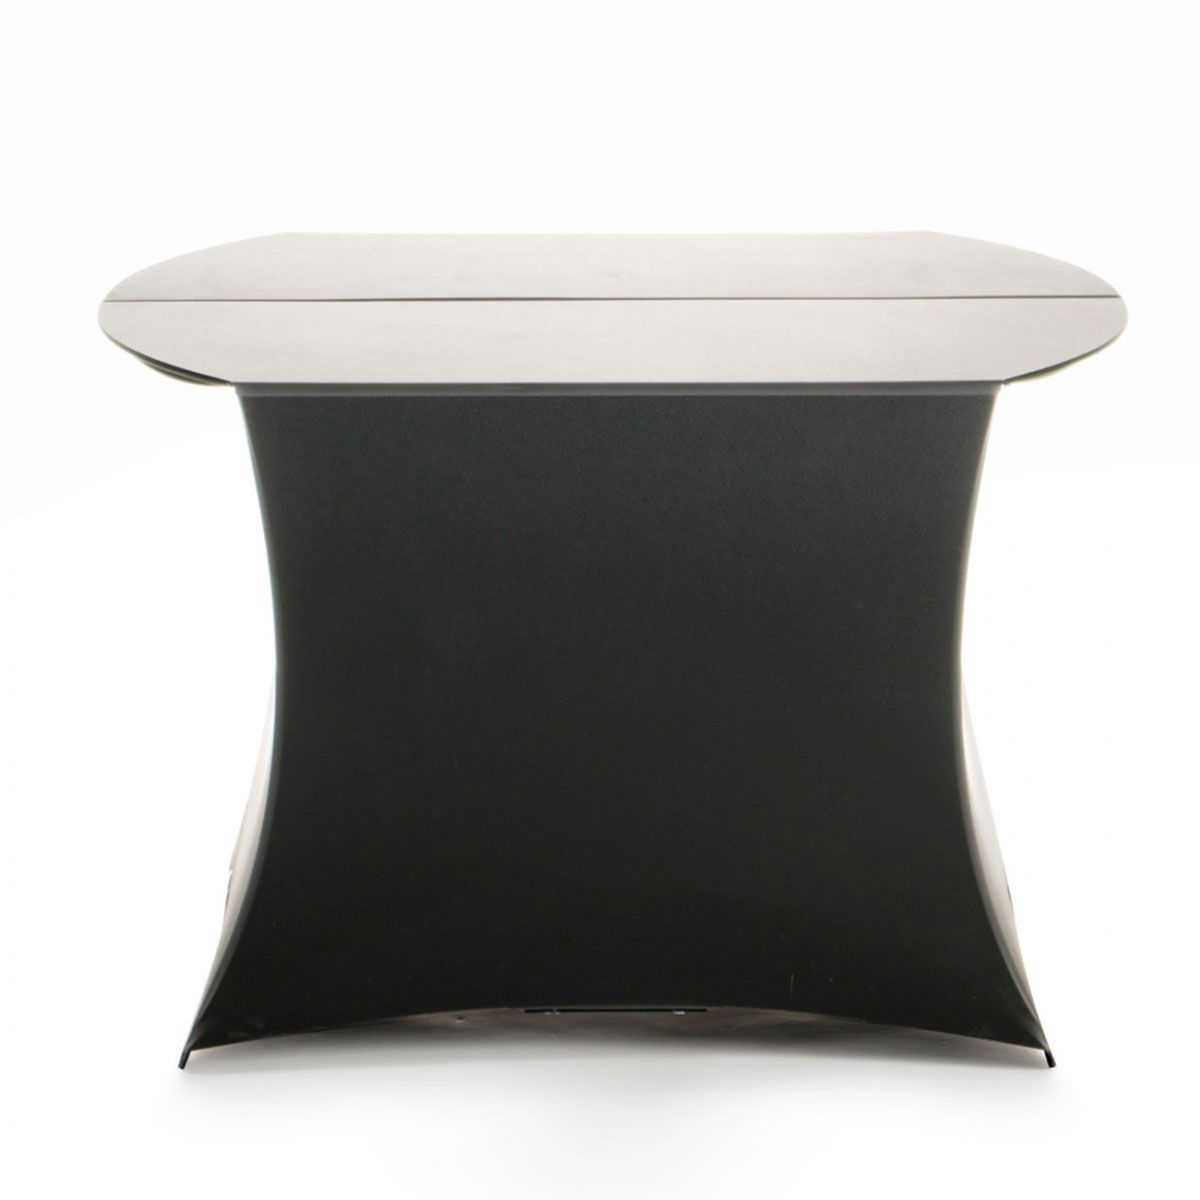 Table basse exterieur design zendart design for Table exterieur tridome